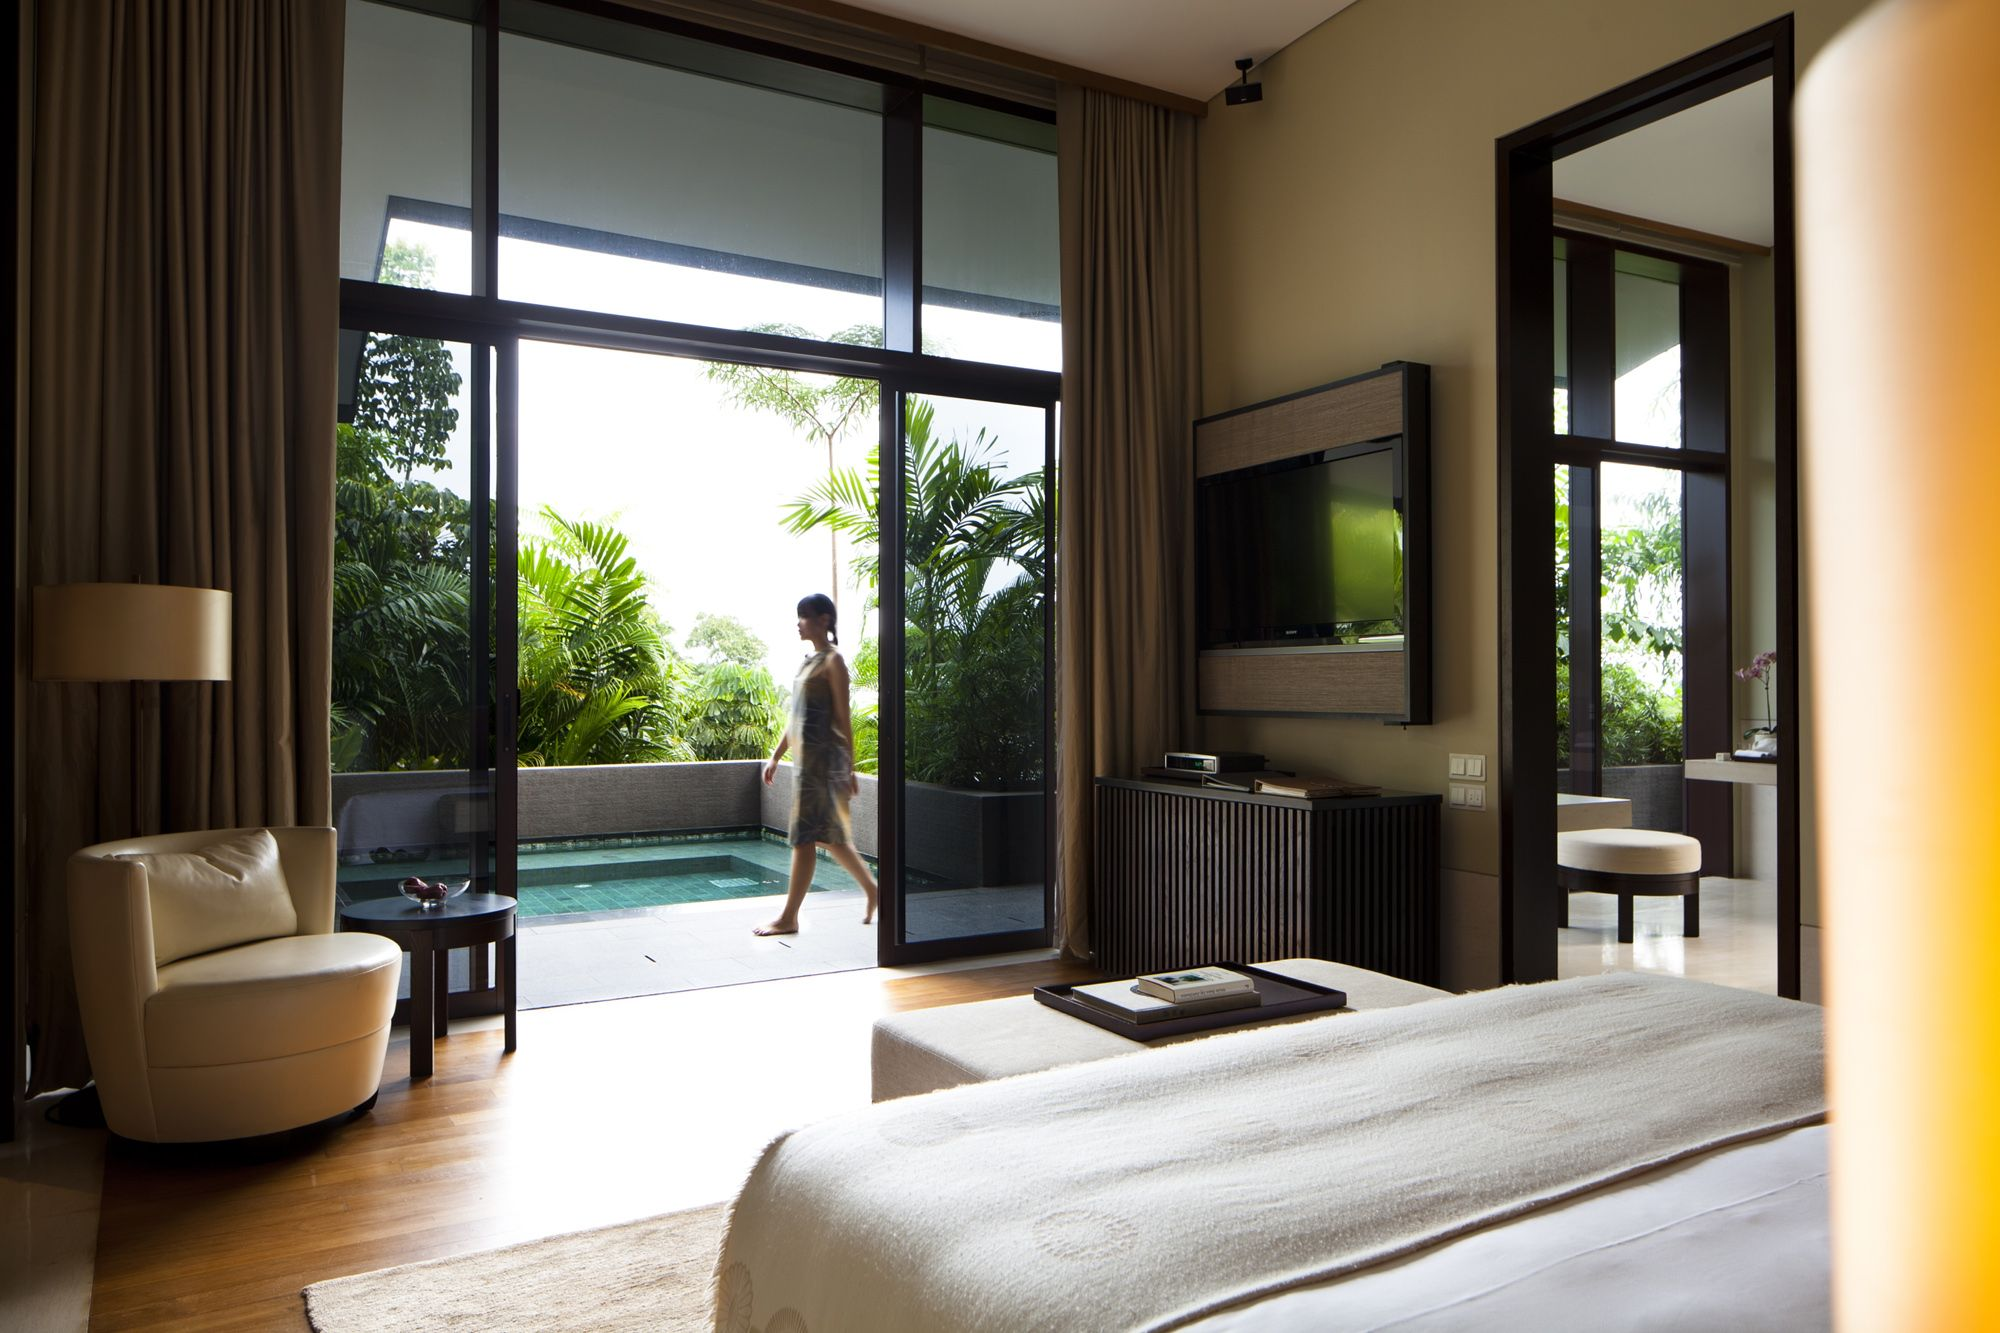 One Bedroom Villa At Capella Singapore #Plunge #Pool #Villas #Luxury